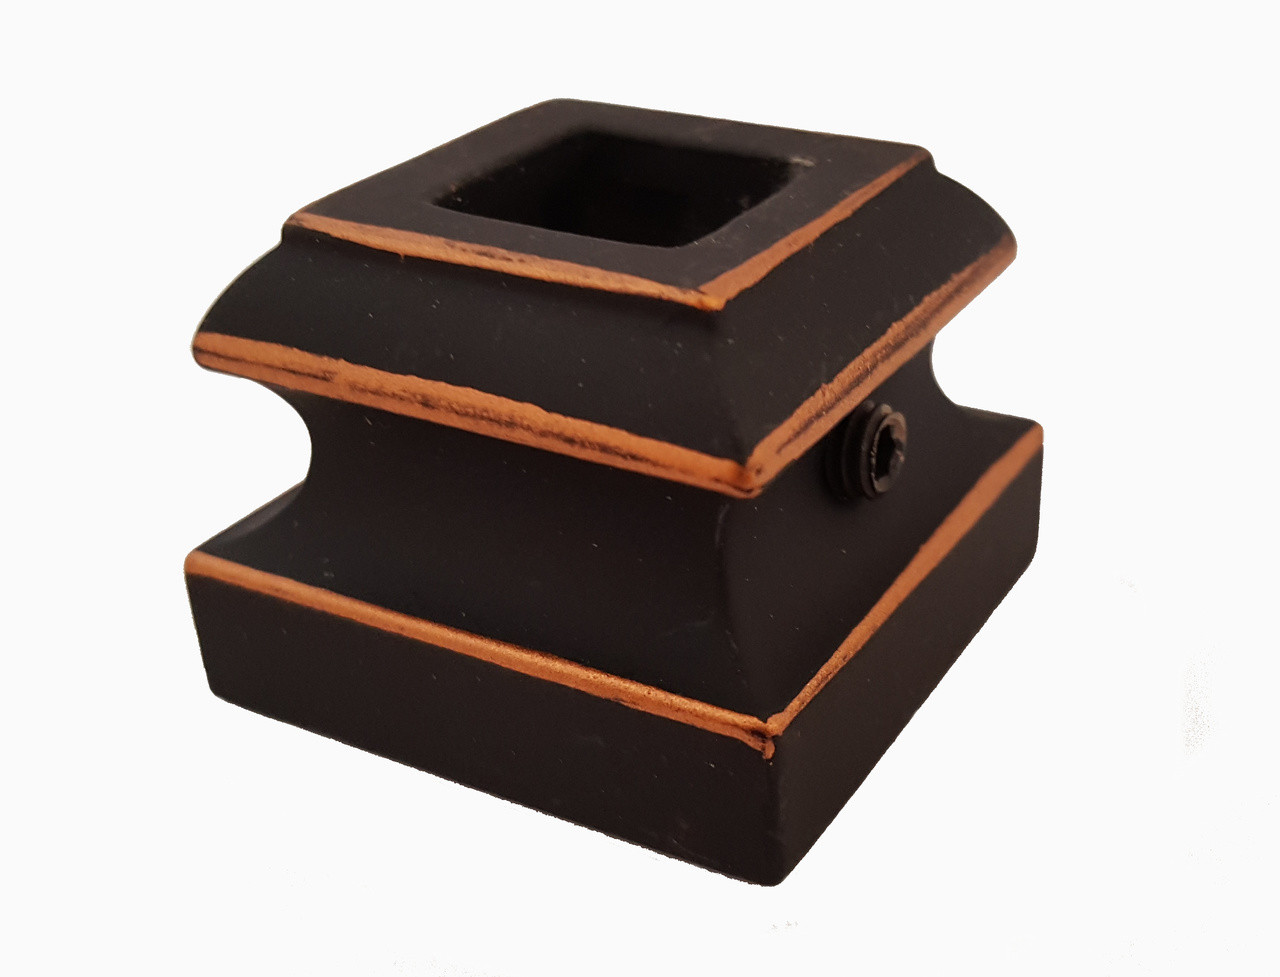 SH900 12mm Flat Shoe with Set Screw, Rubbed Copper